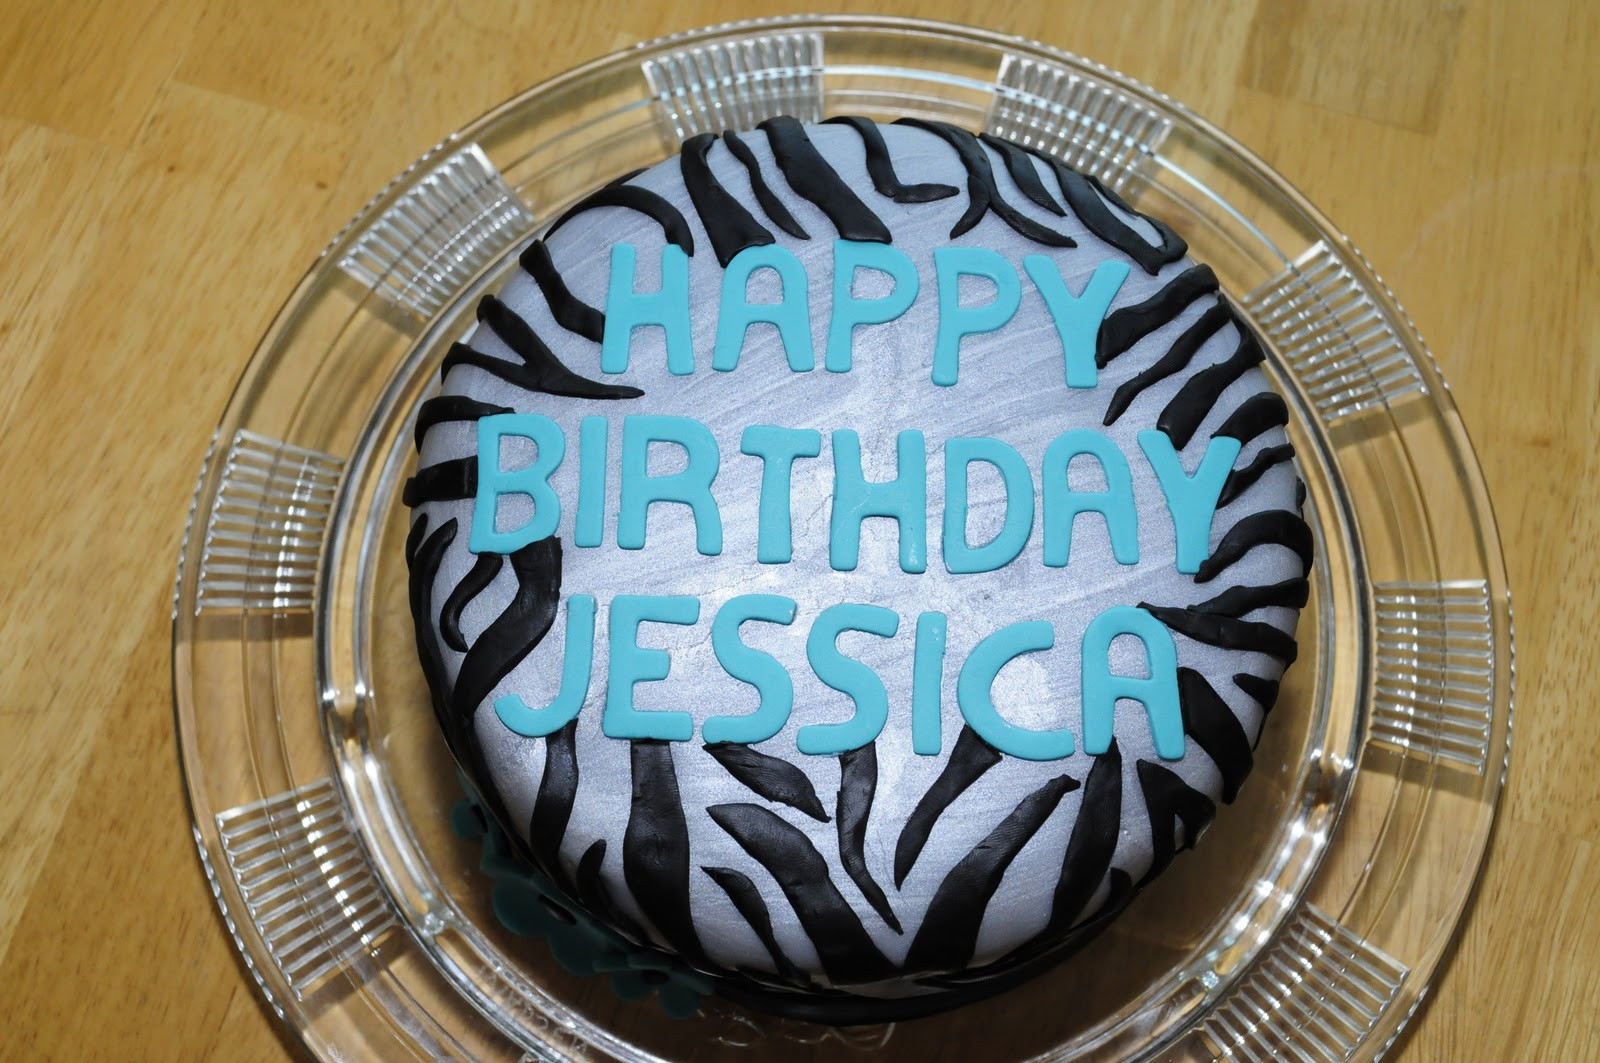 Best ideas about Happy Birthday Jessica Cake . Save or Pin Lindsay s Custom Cakes Silver Zebra Cake Now.